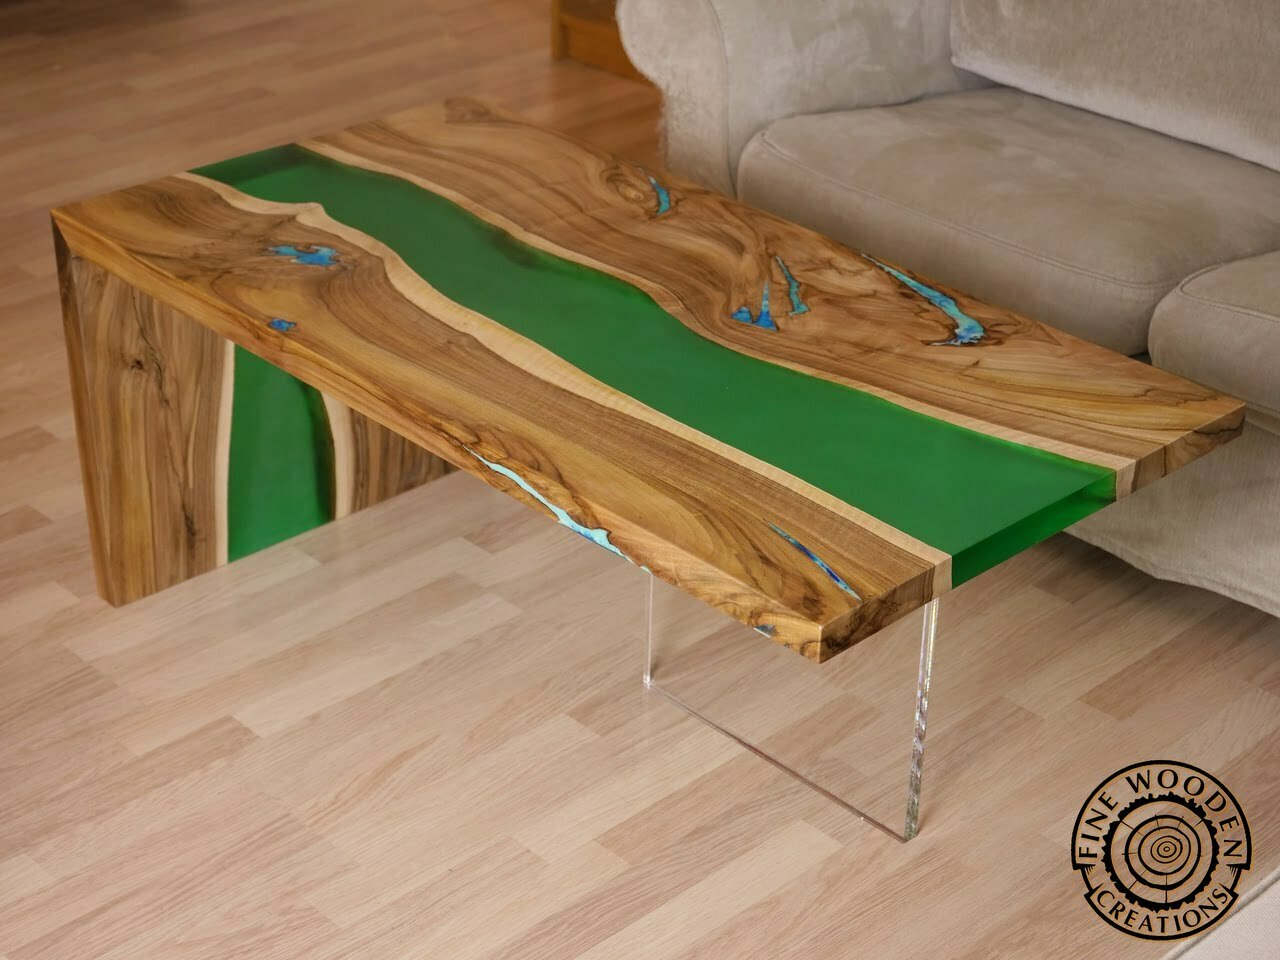 Live Edge Green Waterfall River Coffee Table With Transparent Leg Fine Wooden Creations